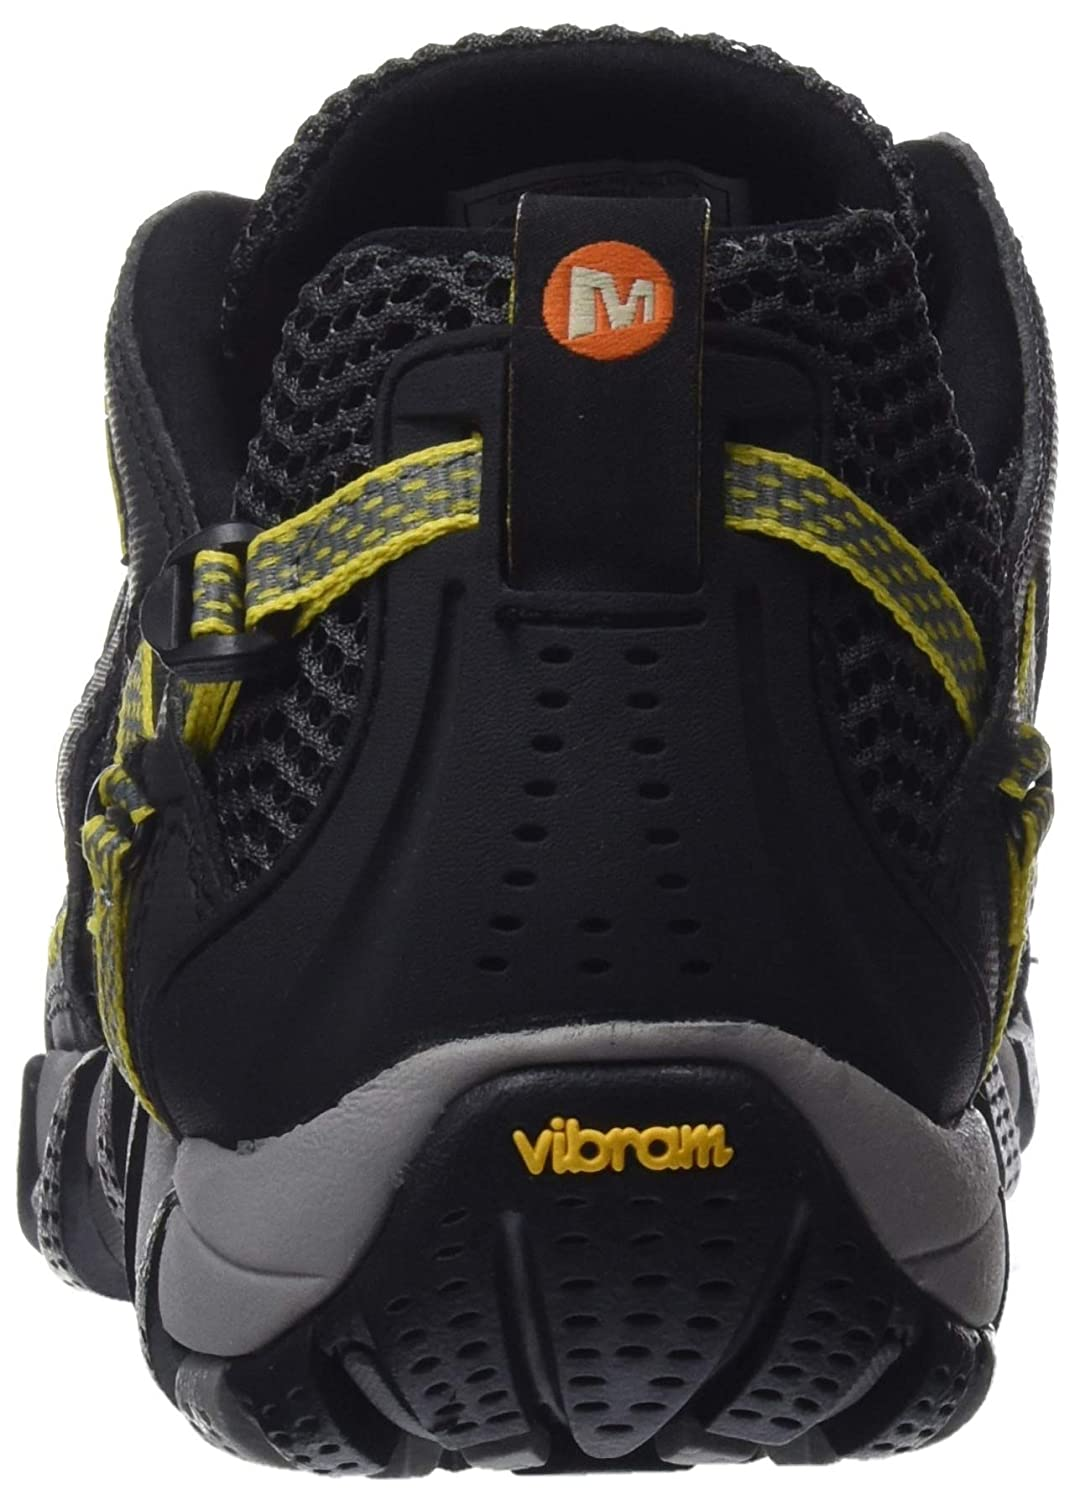 d5a88e1a166a Merrell Men s s Watepro Maipo Low Rise Hiking Shoes Black  Amazon.co.uk   Shoes   Bags